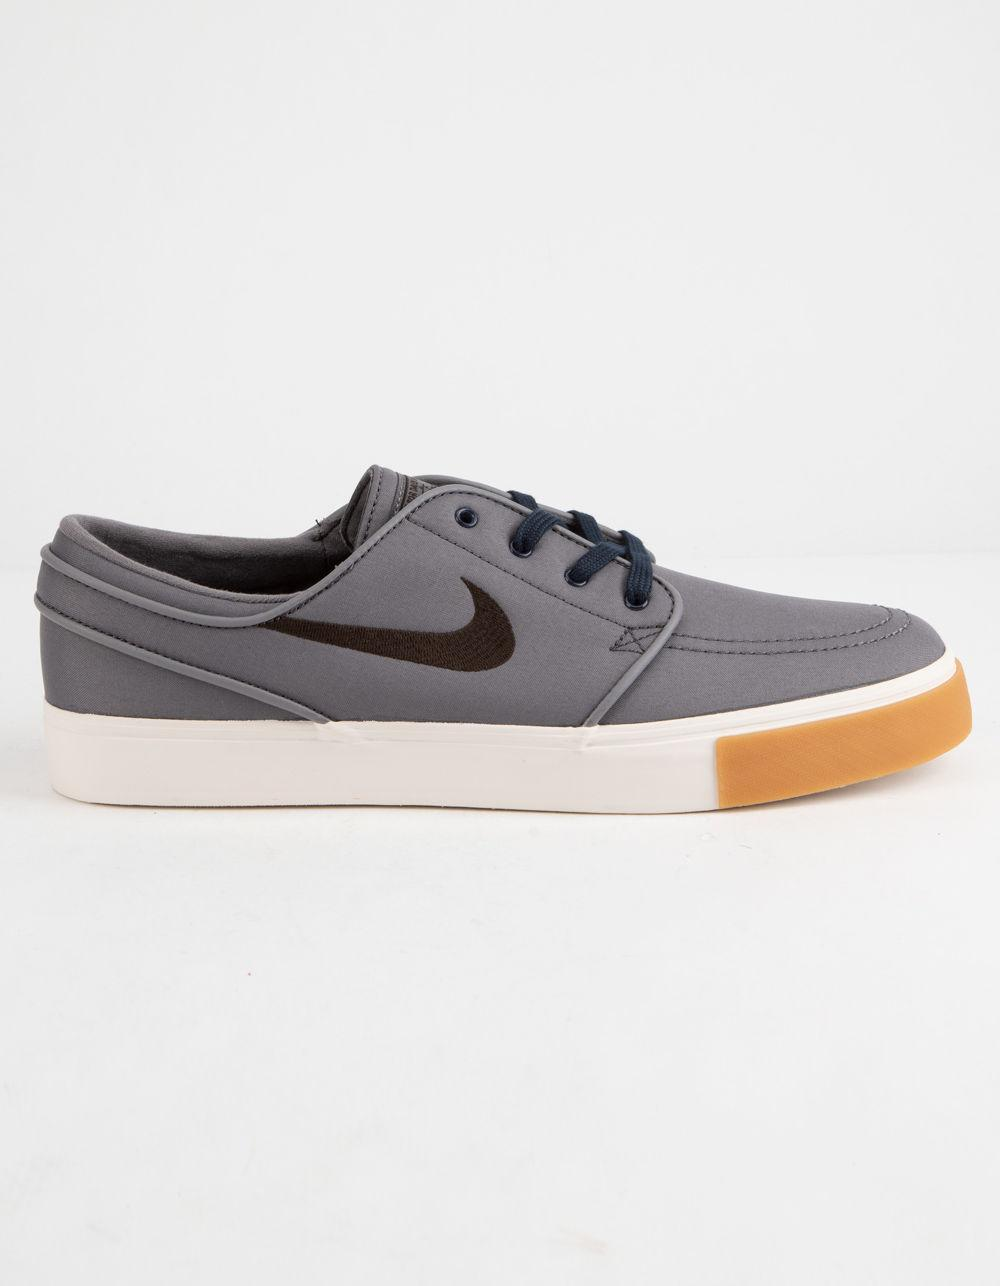 135b5756f4a1 Lyst - Nike Zoom Stefan Janoski Canvas Gunsmoke Shoes in Brown for Men